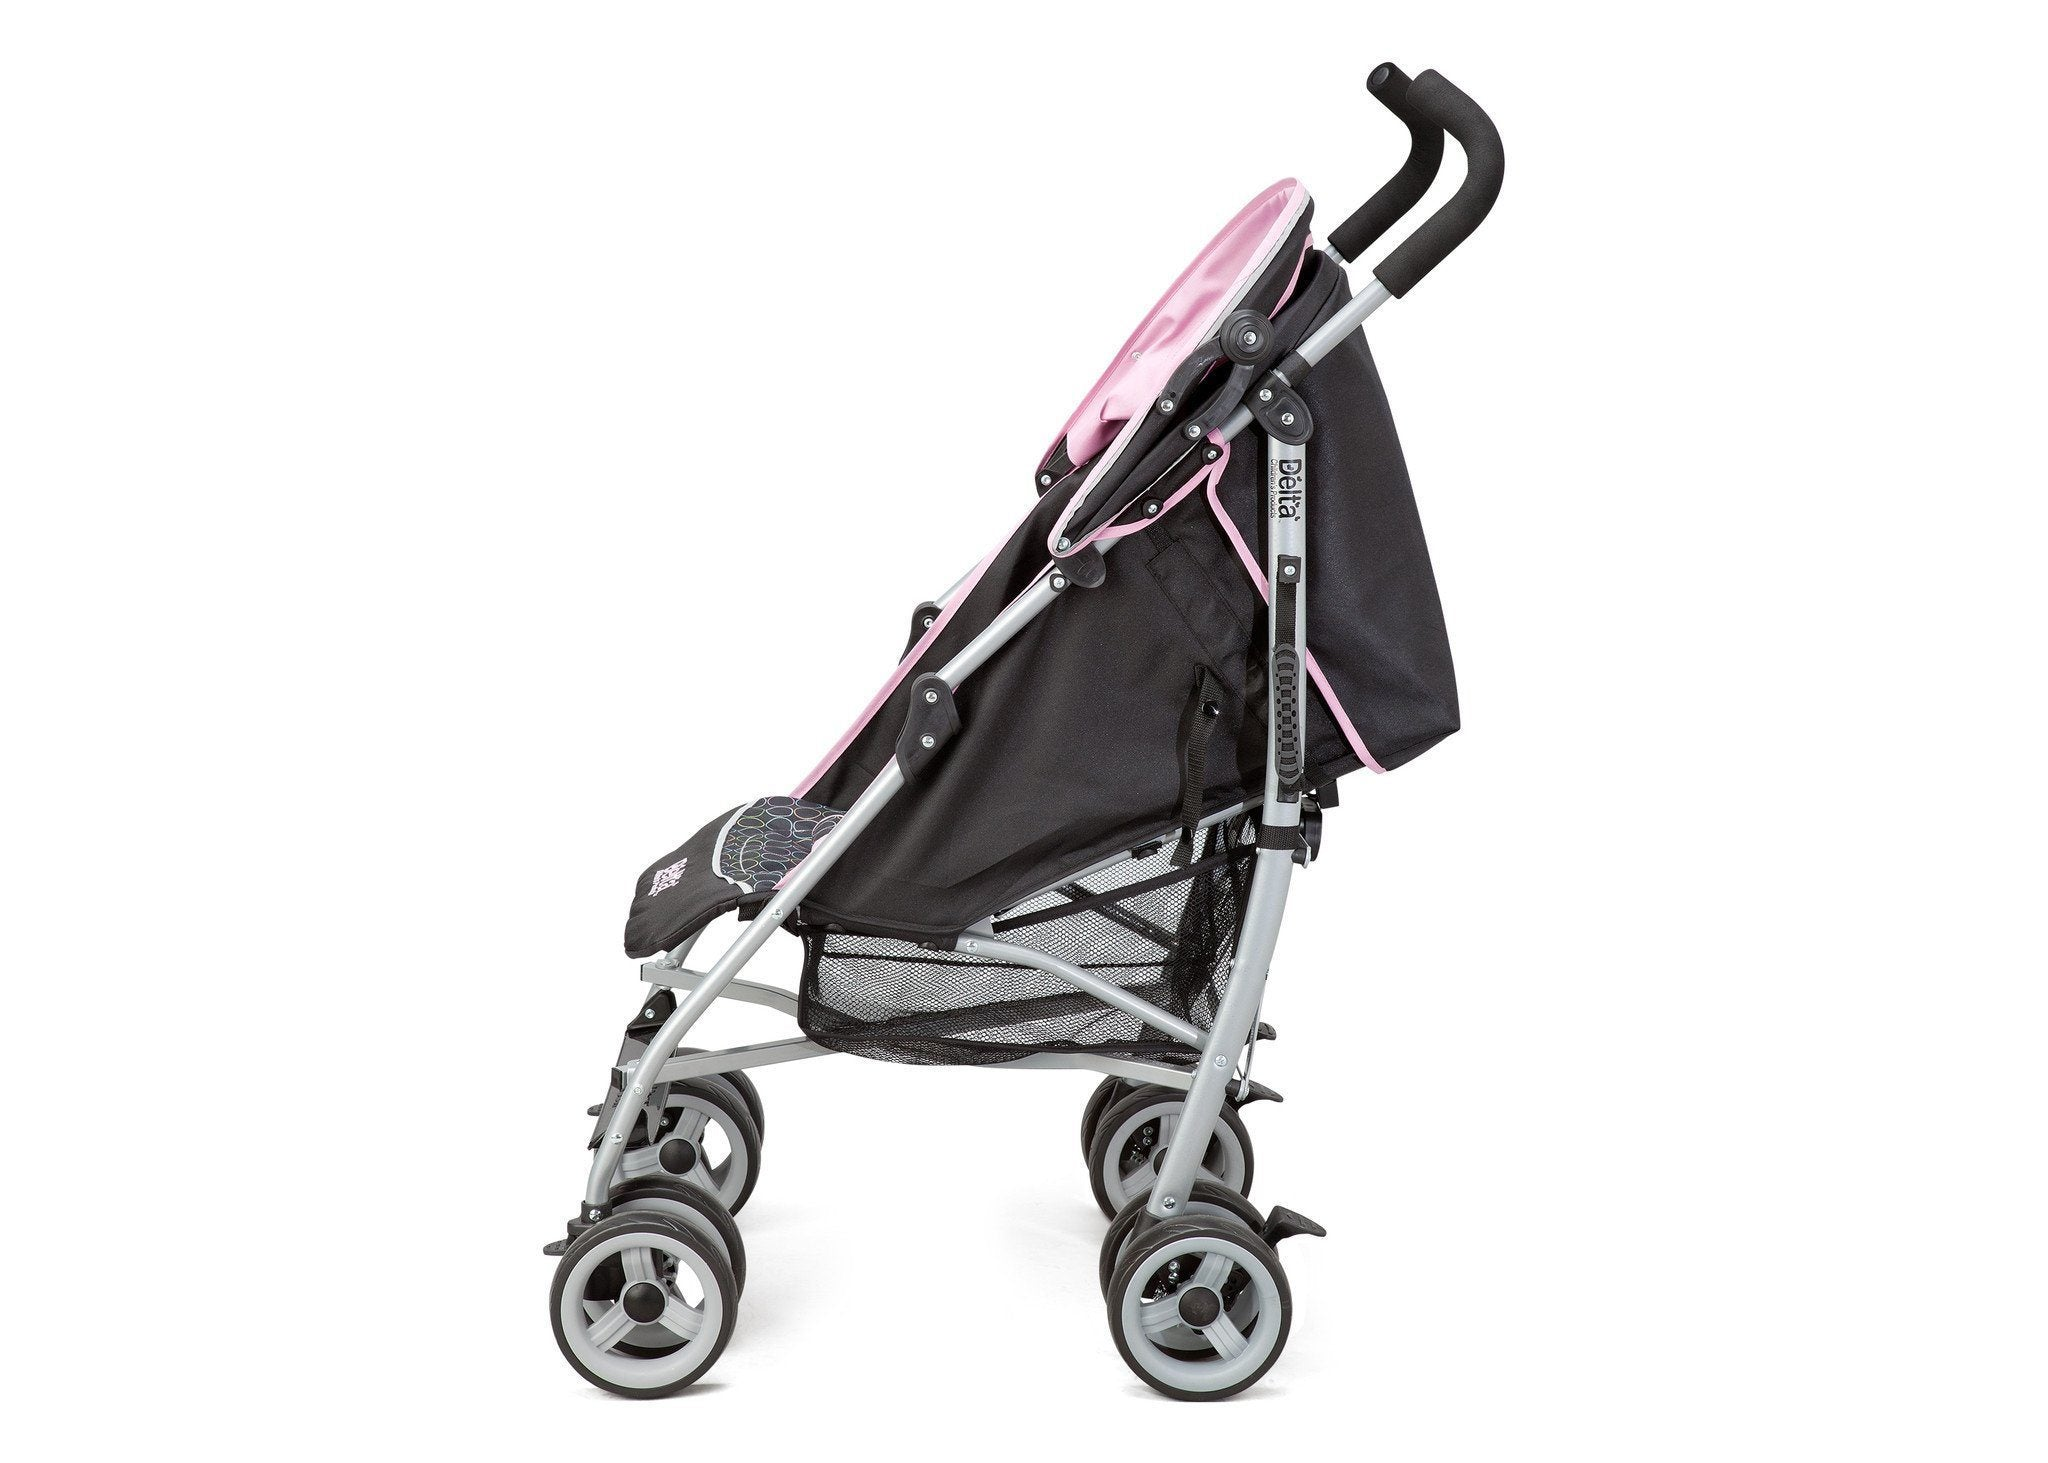 Delta Children Pink (019) Ultimate Convenience Stroller, Full Side View with Canopy Option a2a